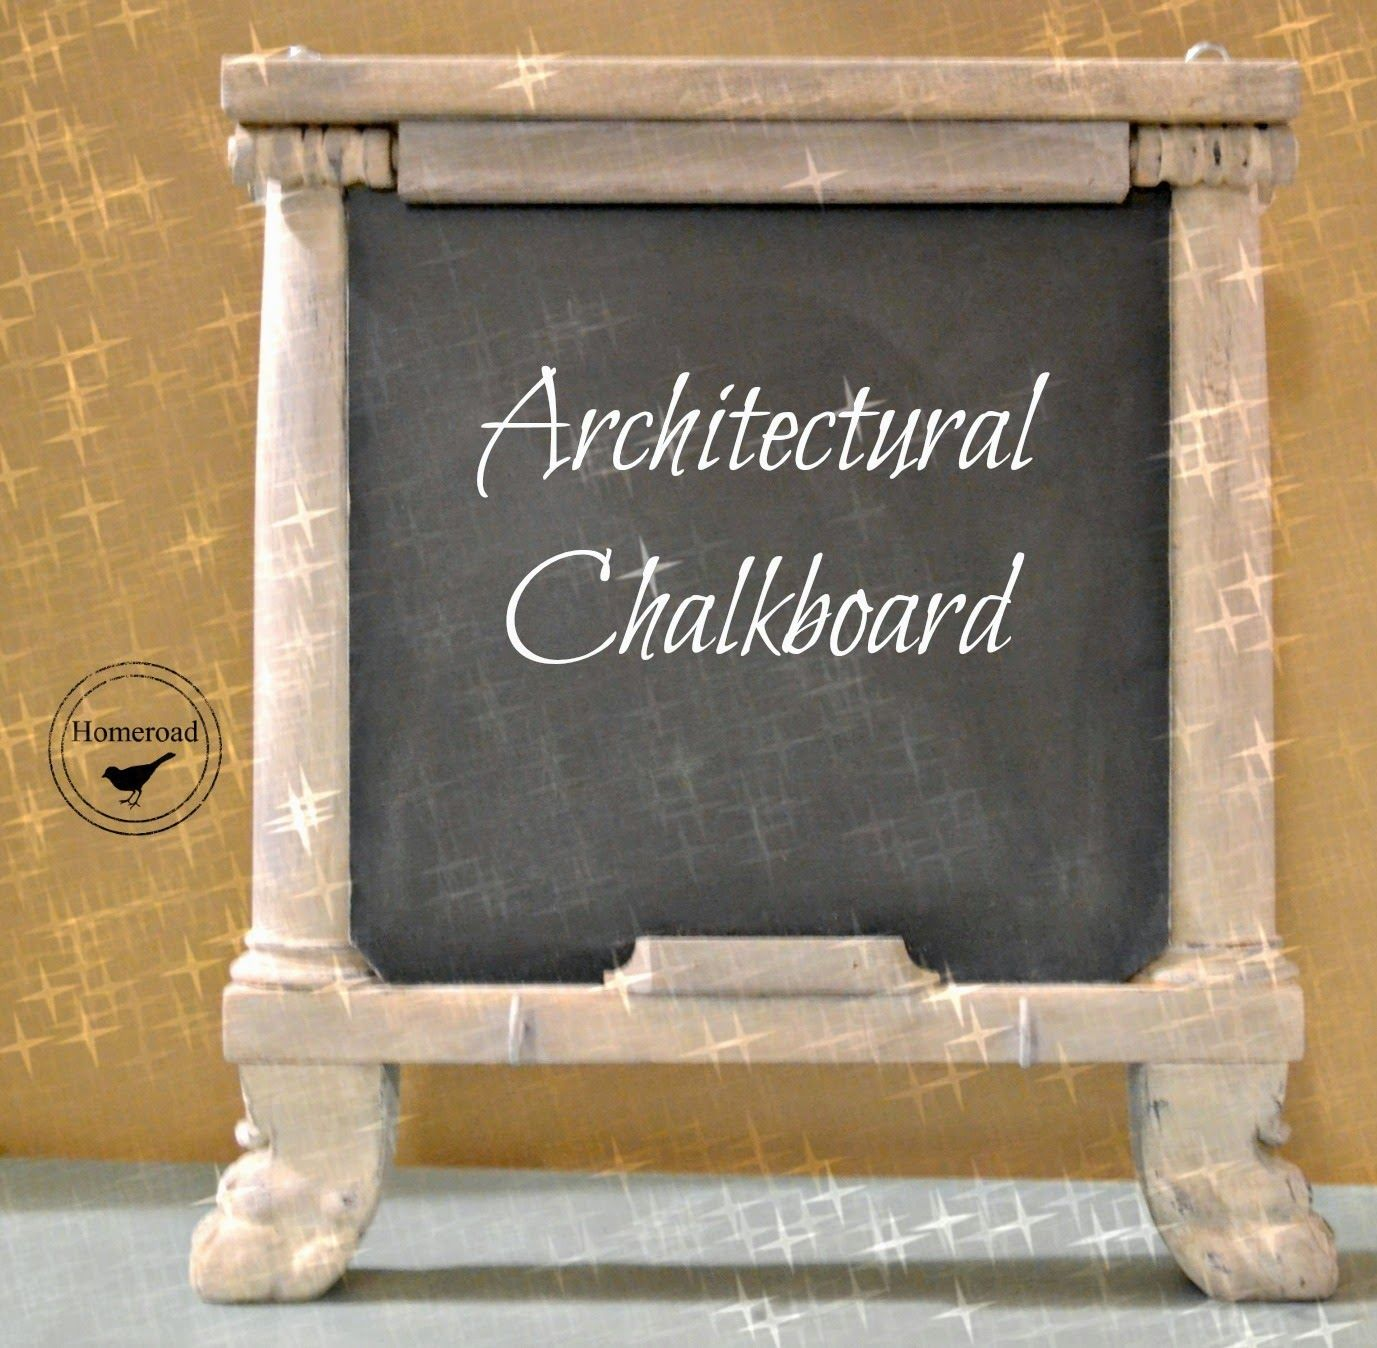 Repurposed Architectural Chalkboards